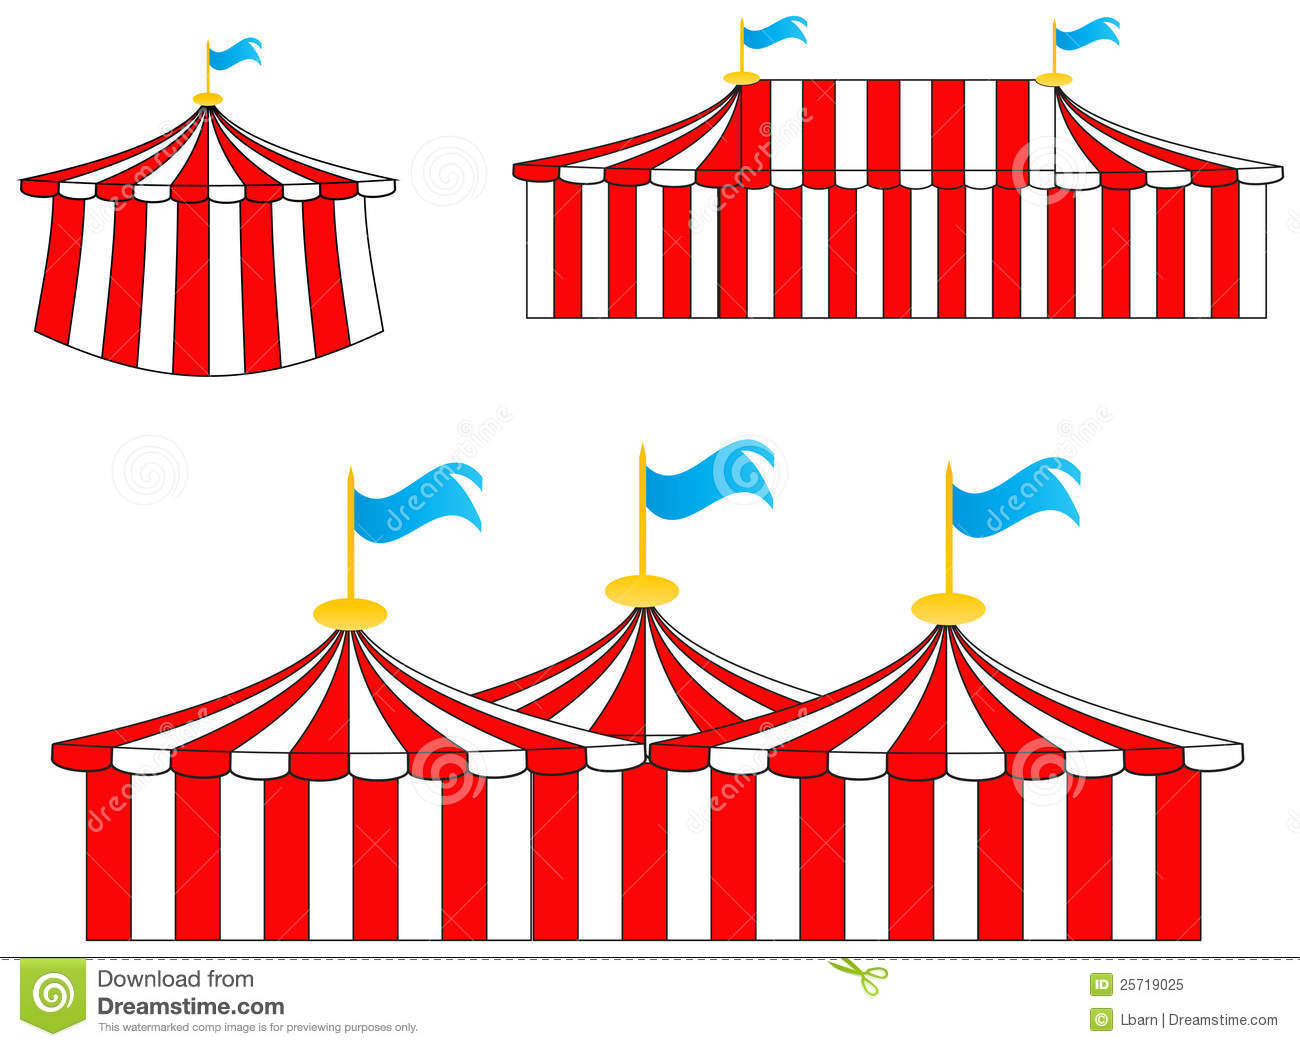 98+ Circus Tent Clipart.